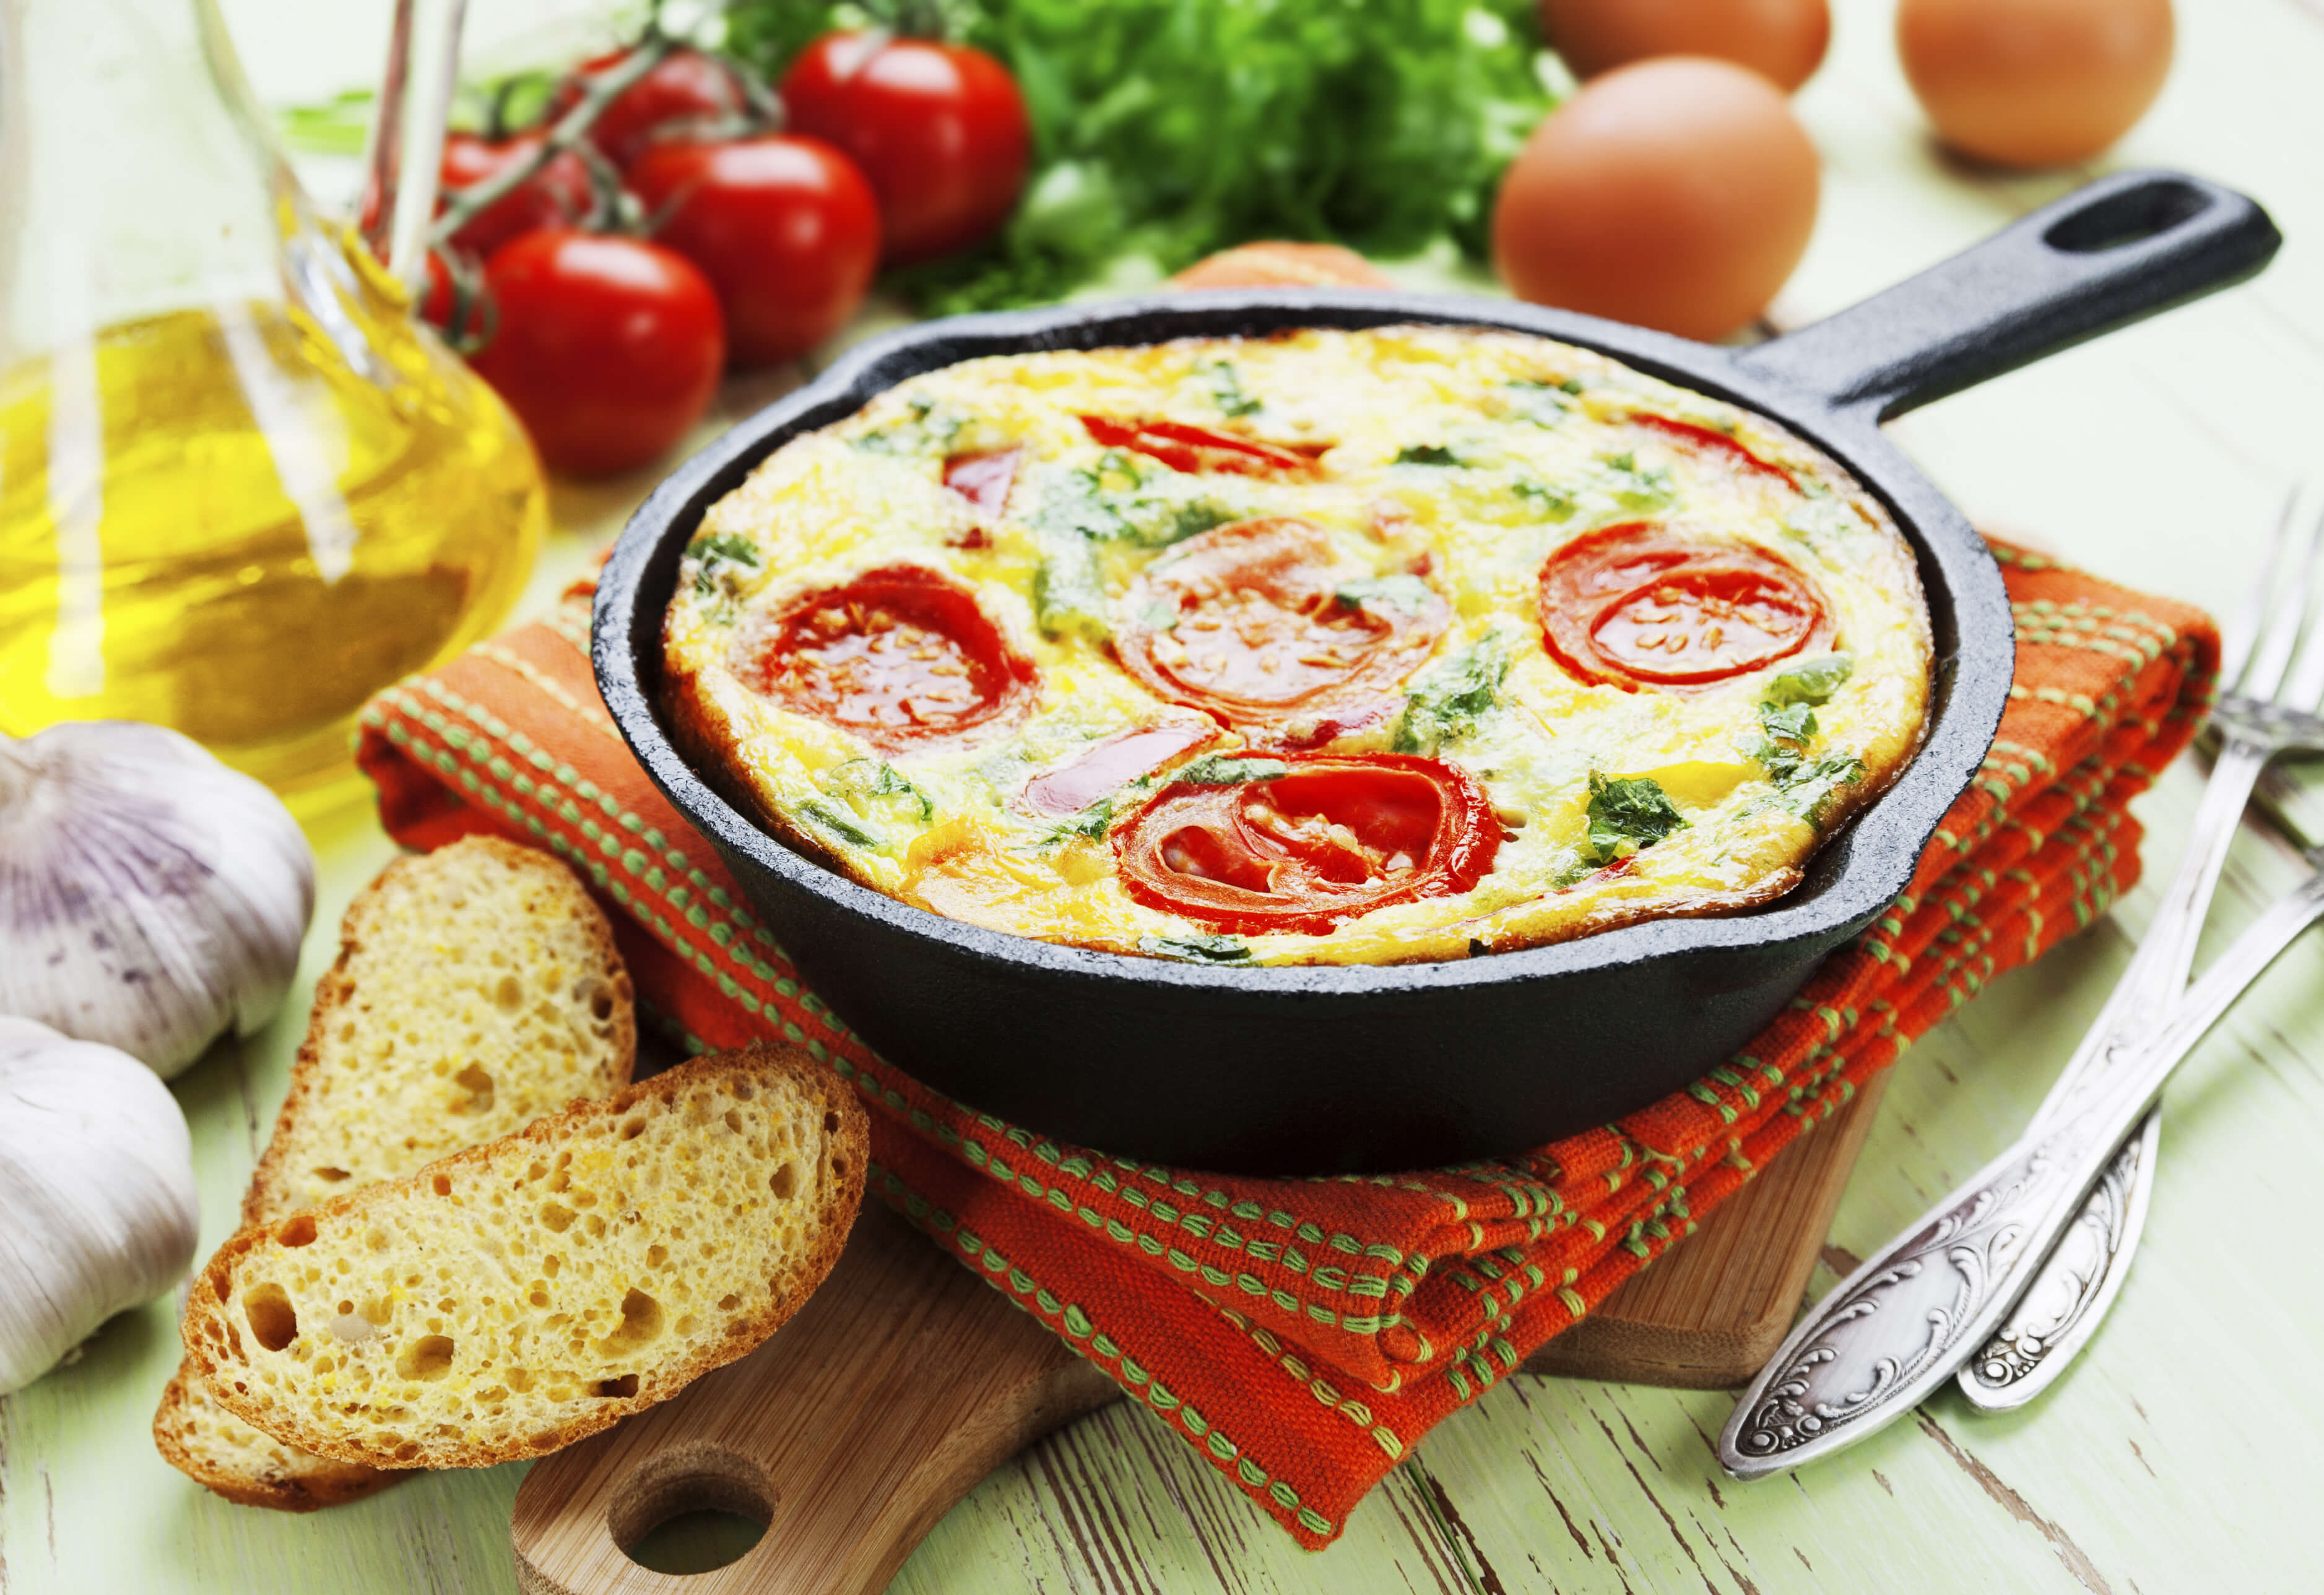 Give your omelets a theme with inspiration from your favorite cuisine.